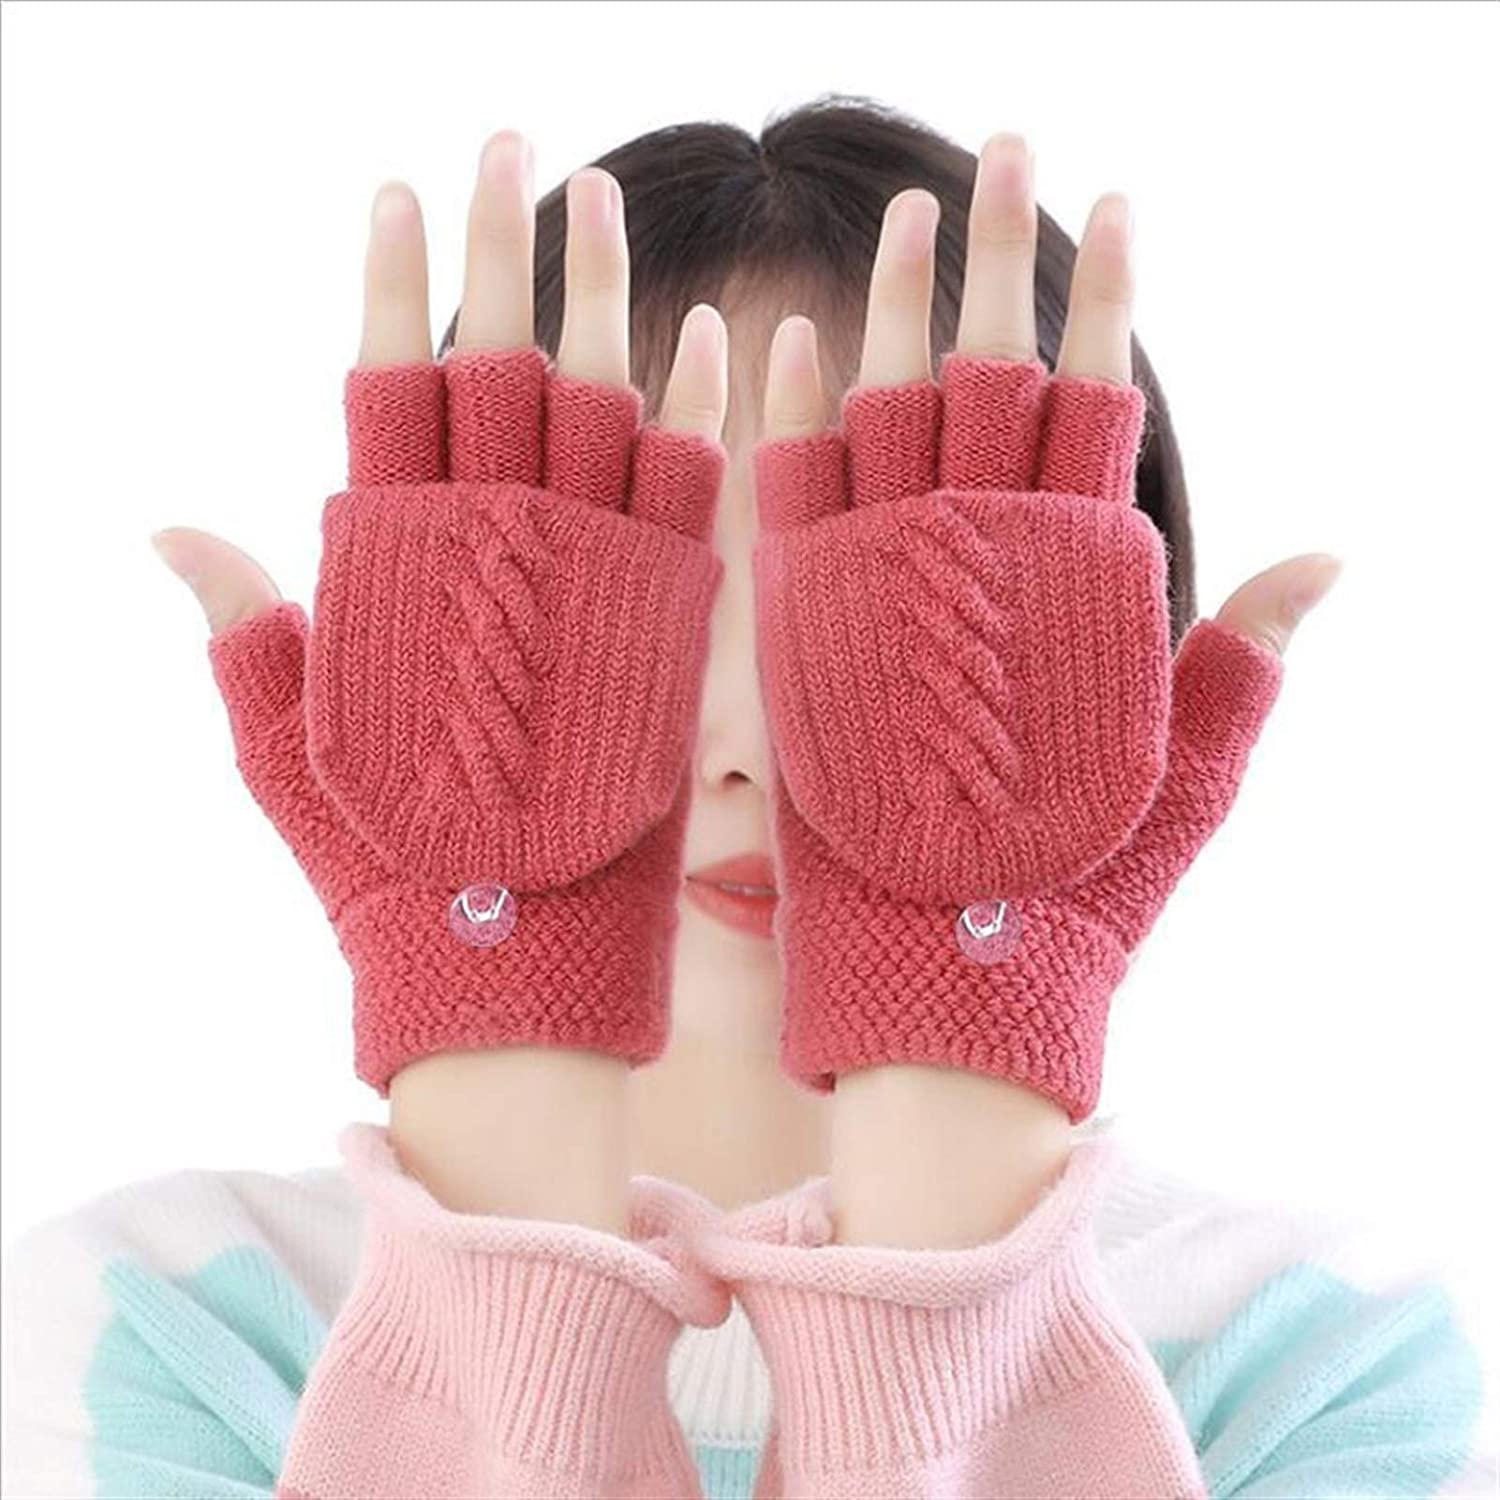 1 Pair of Winter Ladies Clamshell Knitted Gloves Warm and Soft Half-Finger Autumn and Winter Gloves (Color : Pink, Gloves Size : One Size)